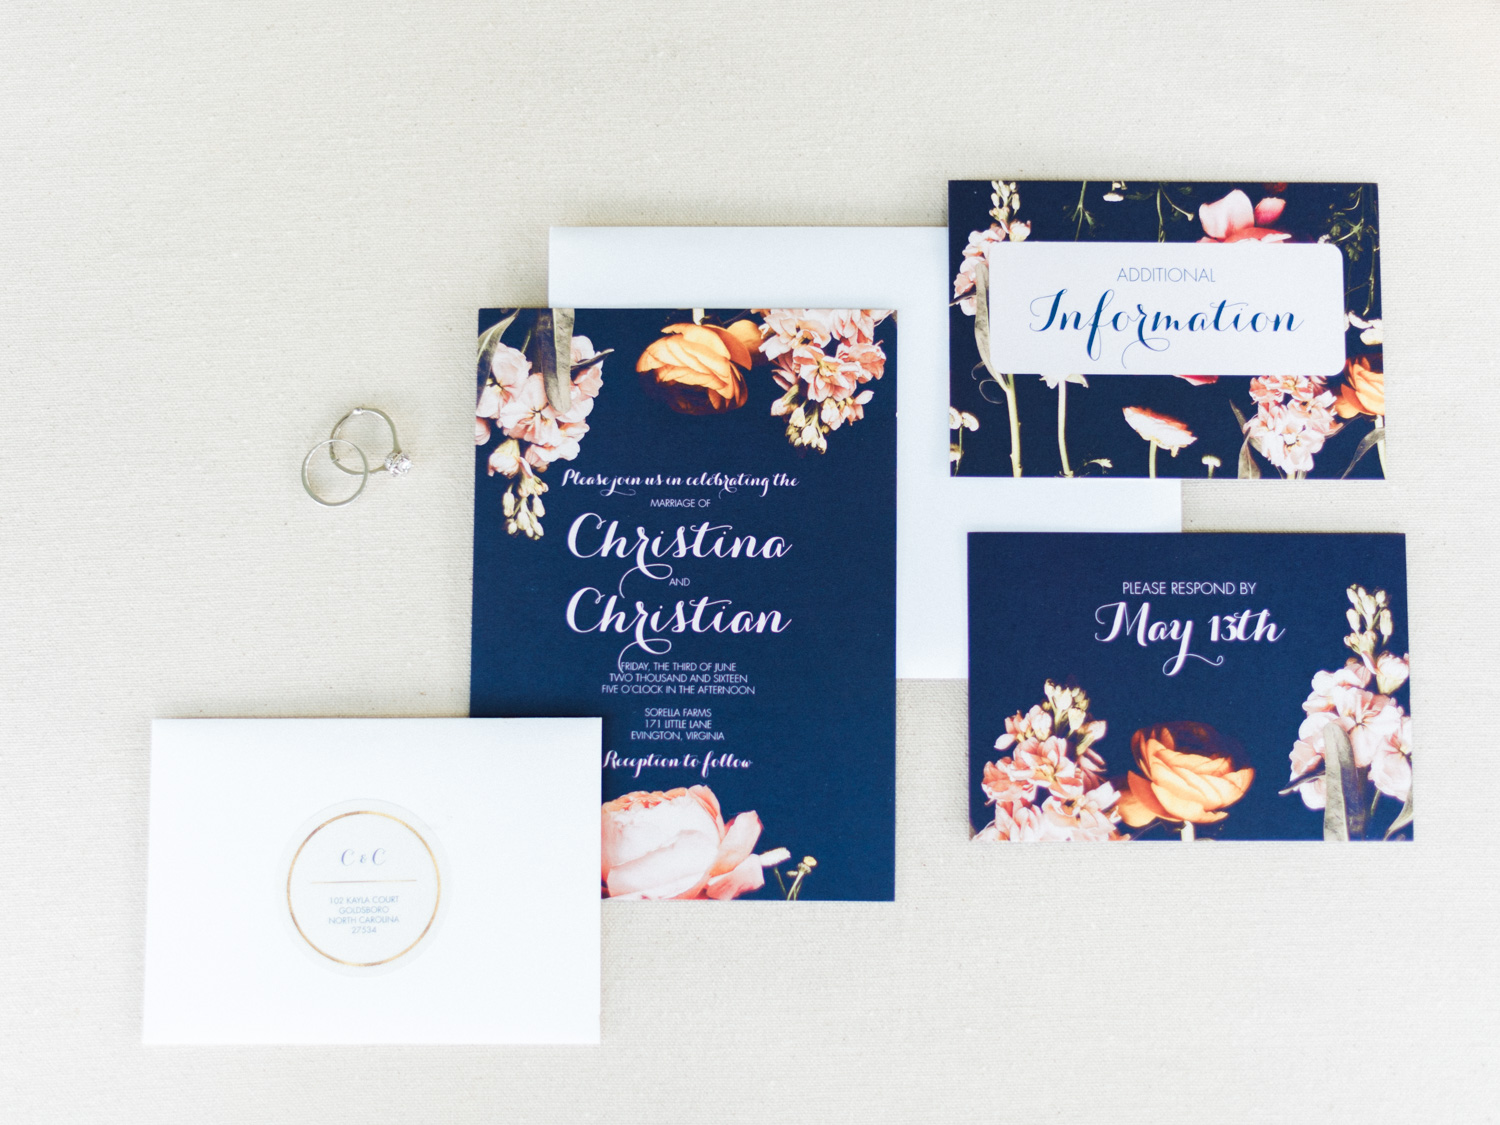 Lynchburg Virginia | Sorella Farms | Charlottesville Virginia | Wedding Photographer | Kelsey & Nate | kelseyandnate.com | Navy Blue and Floral Invitation Suite